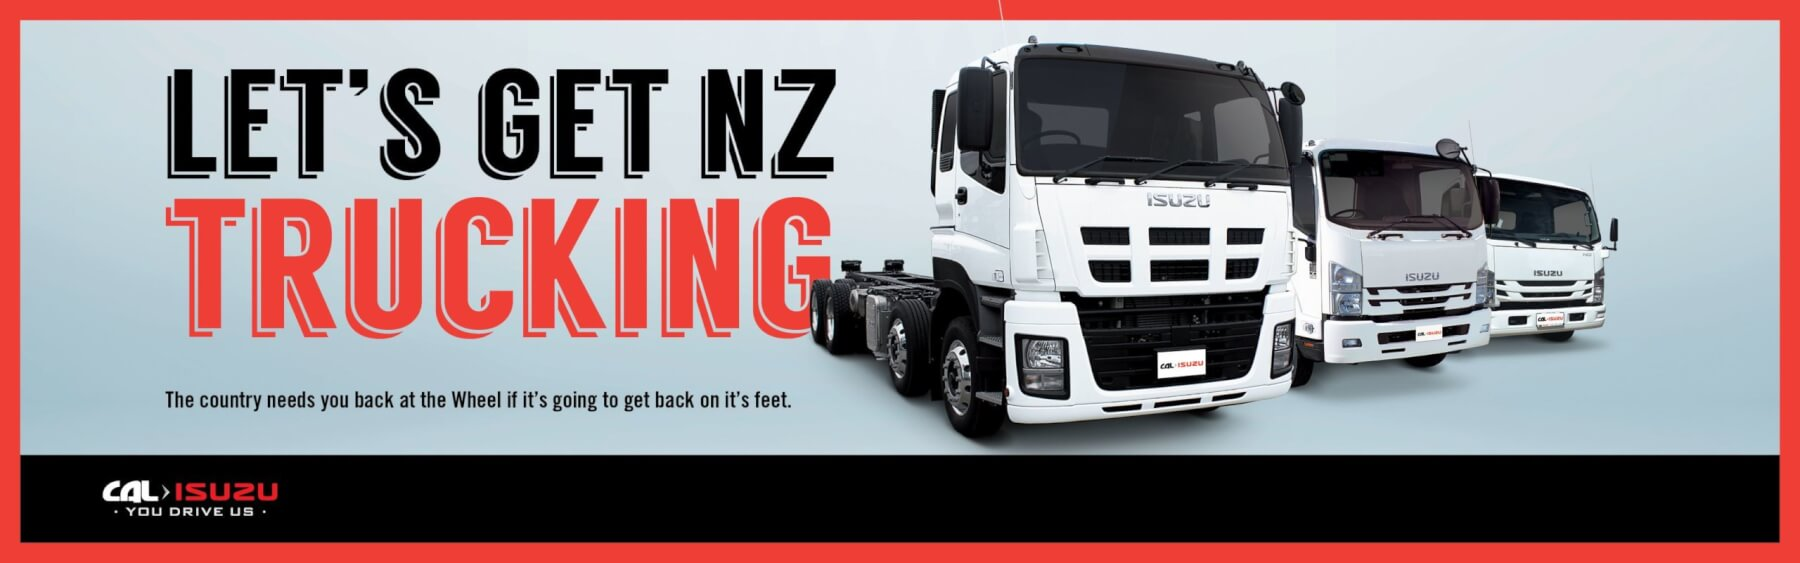 Let's Get NZ Trucking